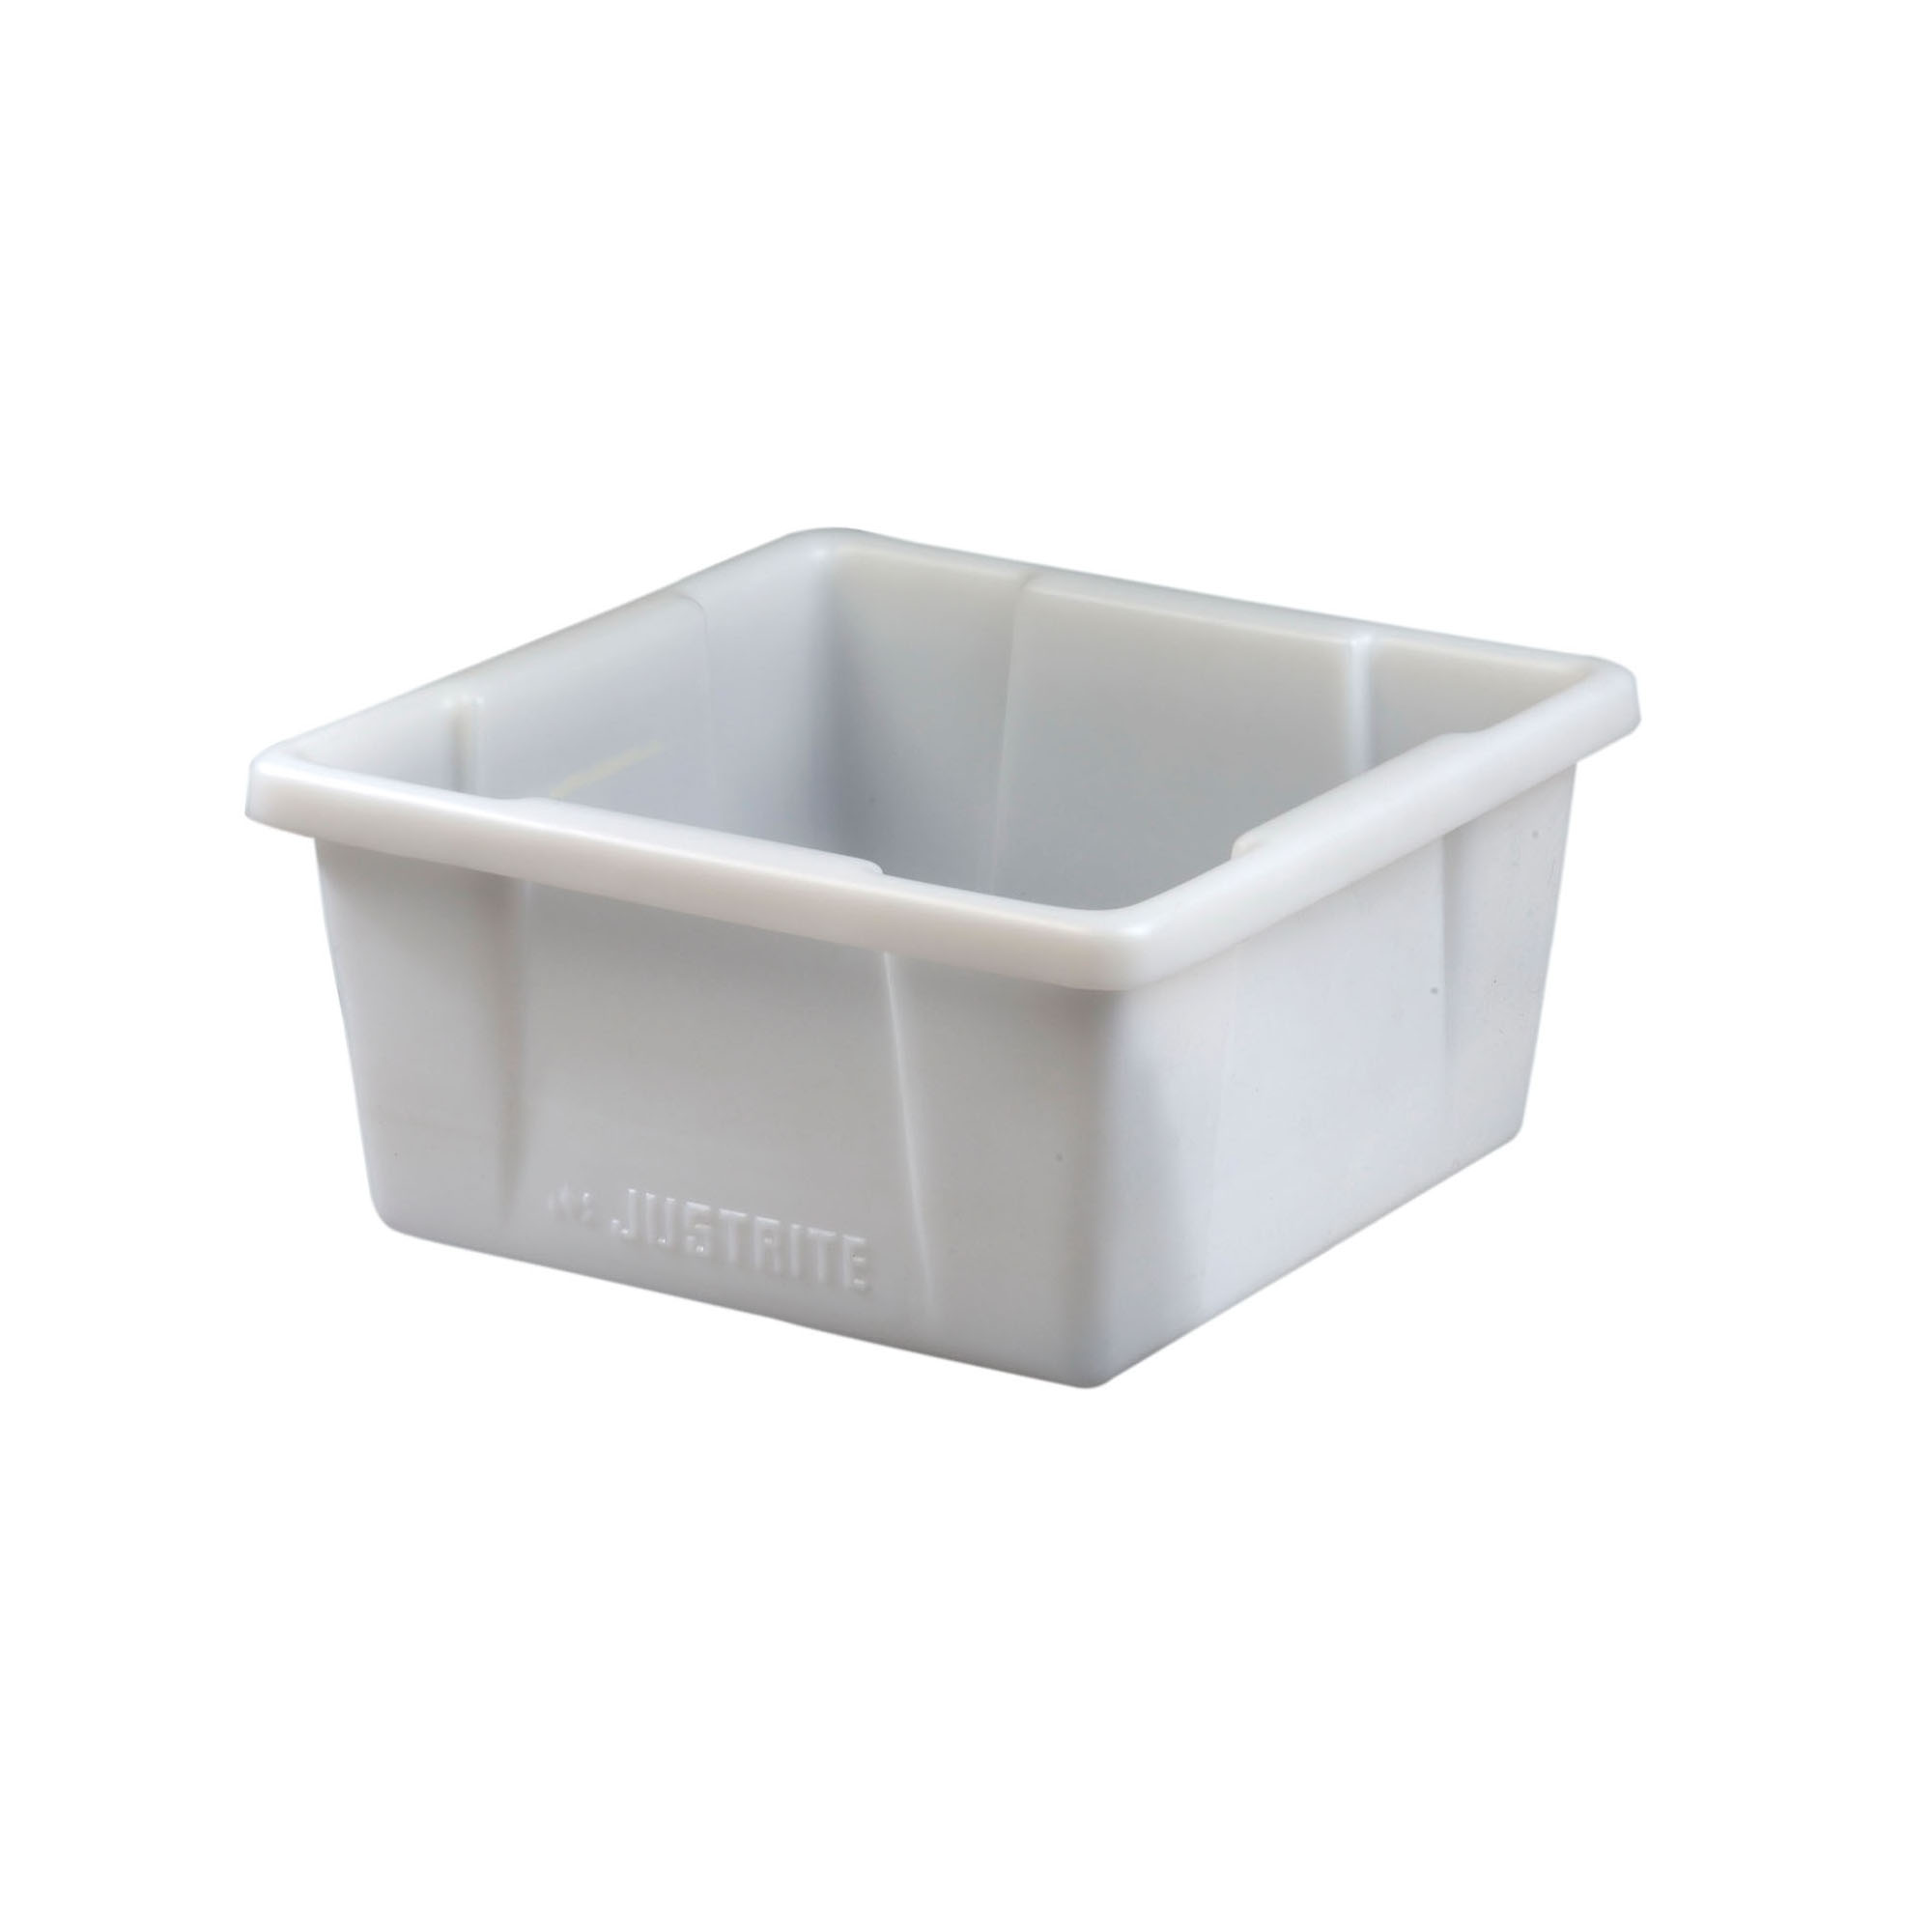 Justrite® 84003 Square Spill Basin, 5 gal, 14-7/8 in L x 14-7/8 in W x 7-5/8 in H, Polyethylene